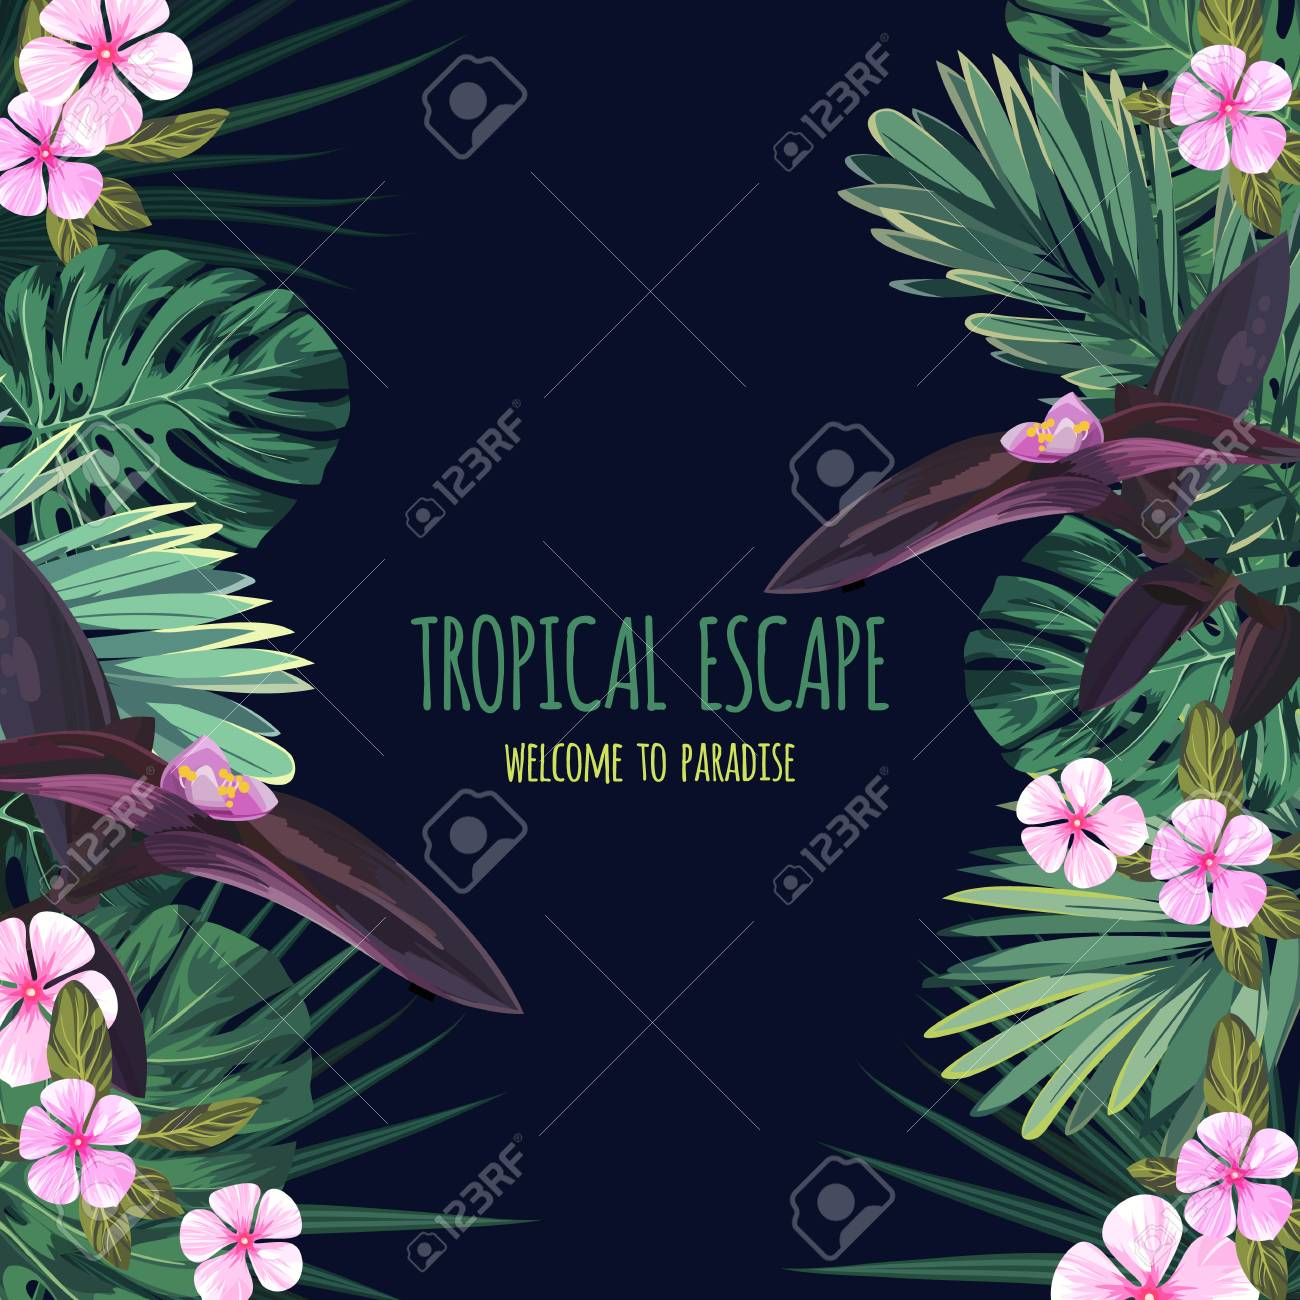 Floral square postcard design with tropical flowers monstera floral square postcard design with tropical flowers monstera and royal palm leaves exotic hawaiian izmirmasajfo